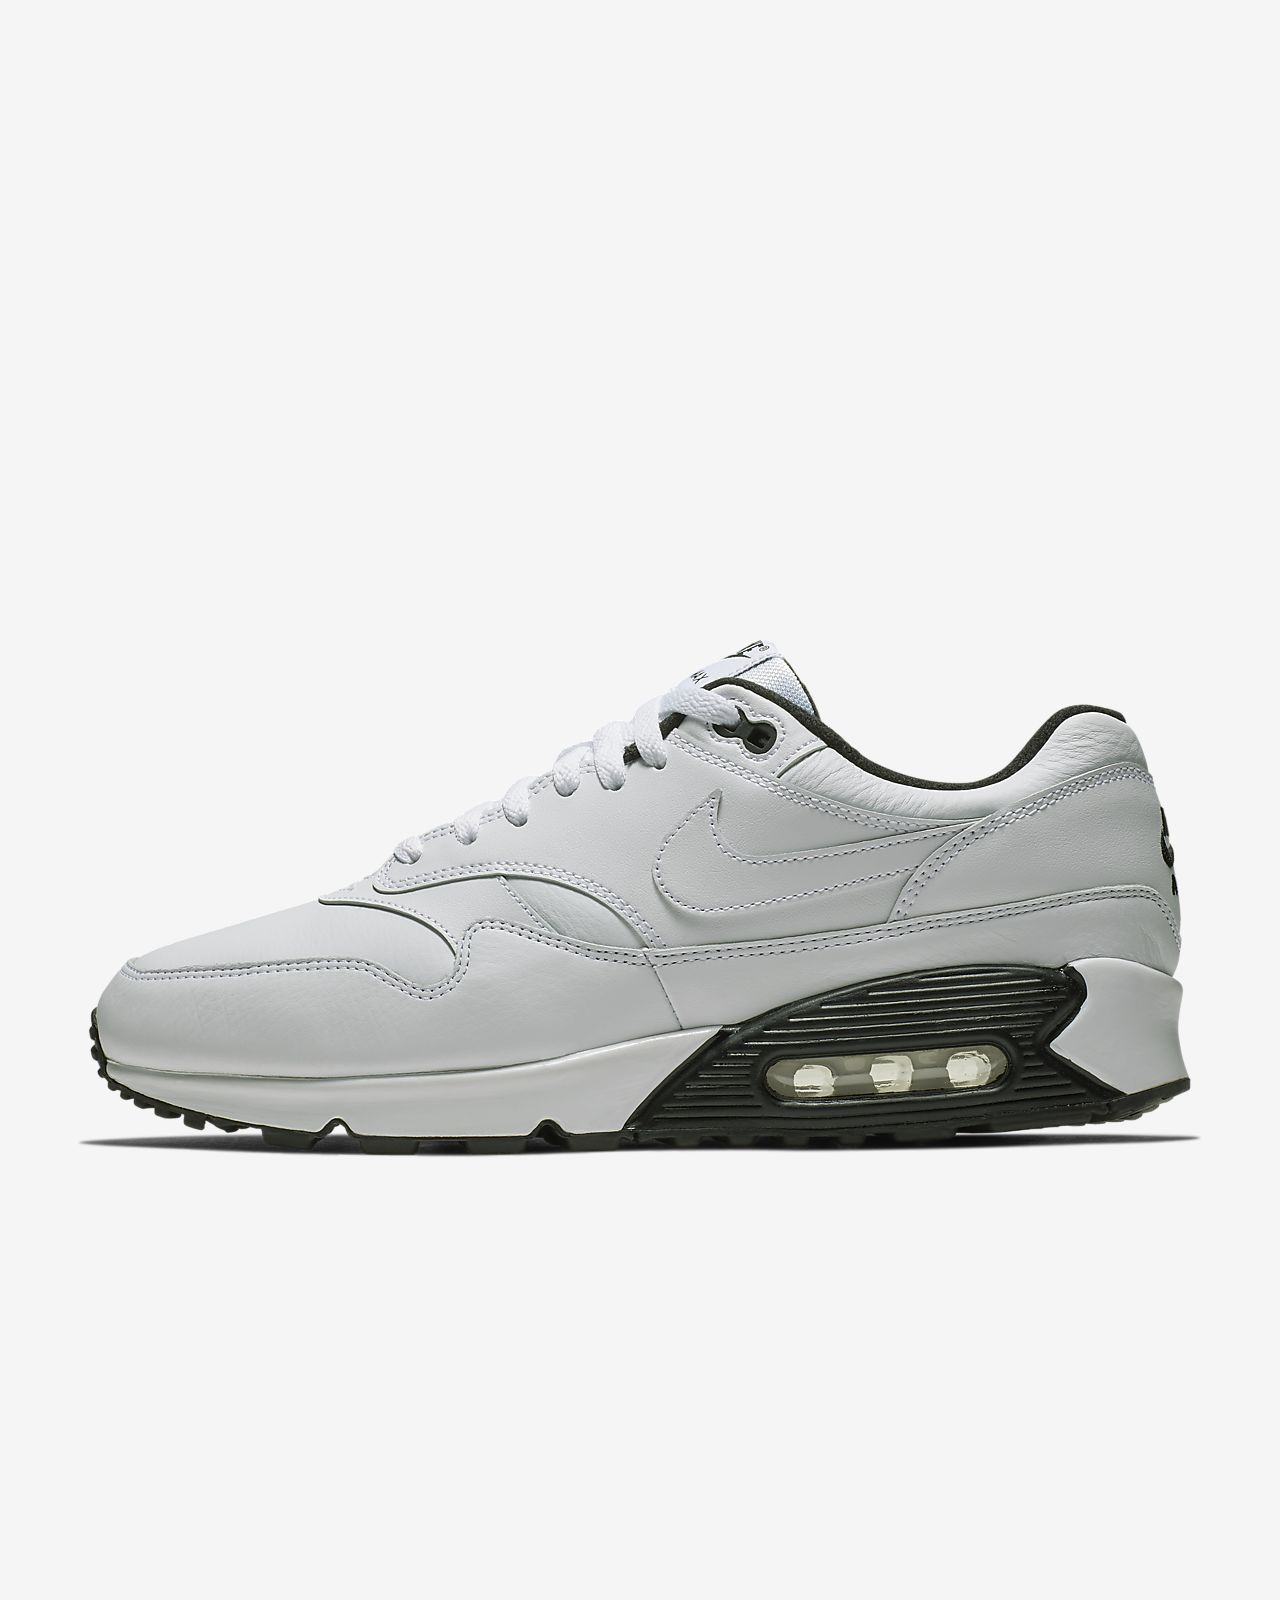 promo code 2cc90 2f334 ... promo code for nike air max 90 1 herresko 220cd dab5a